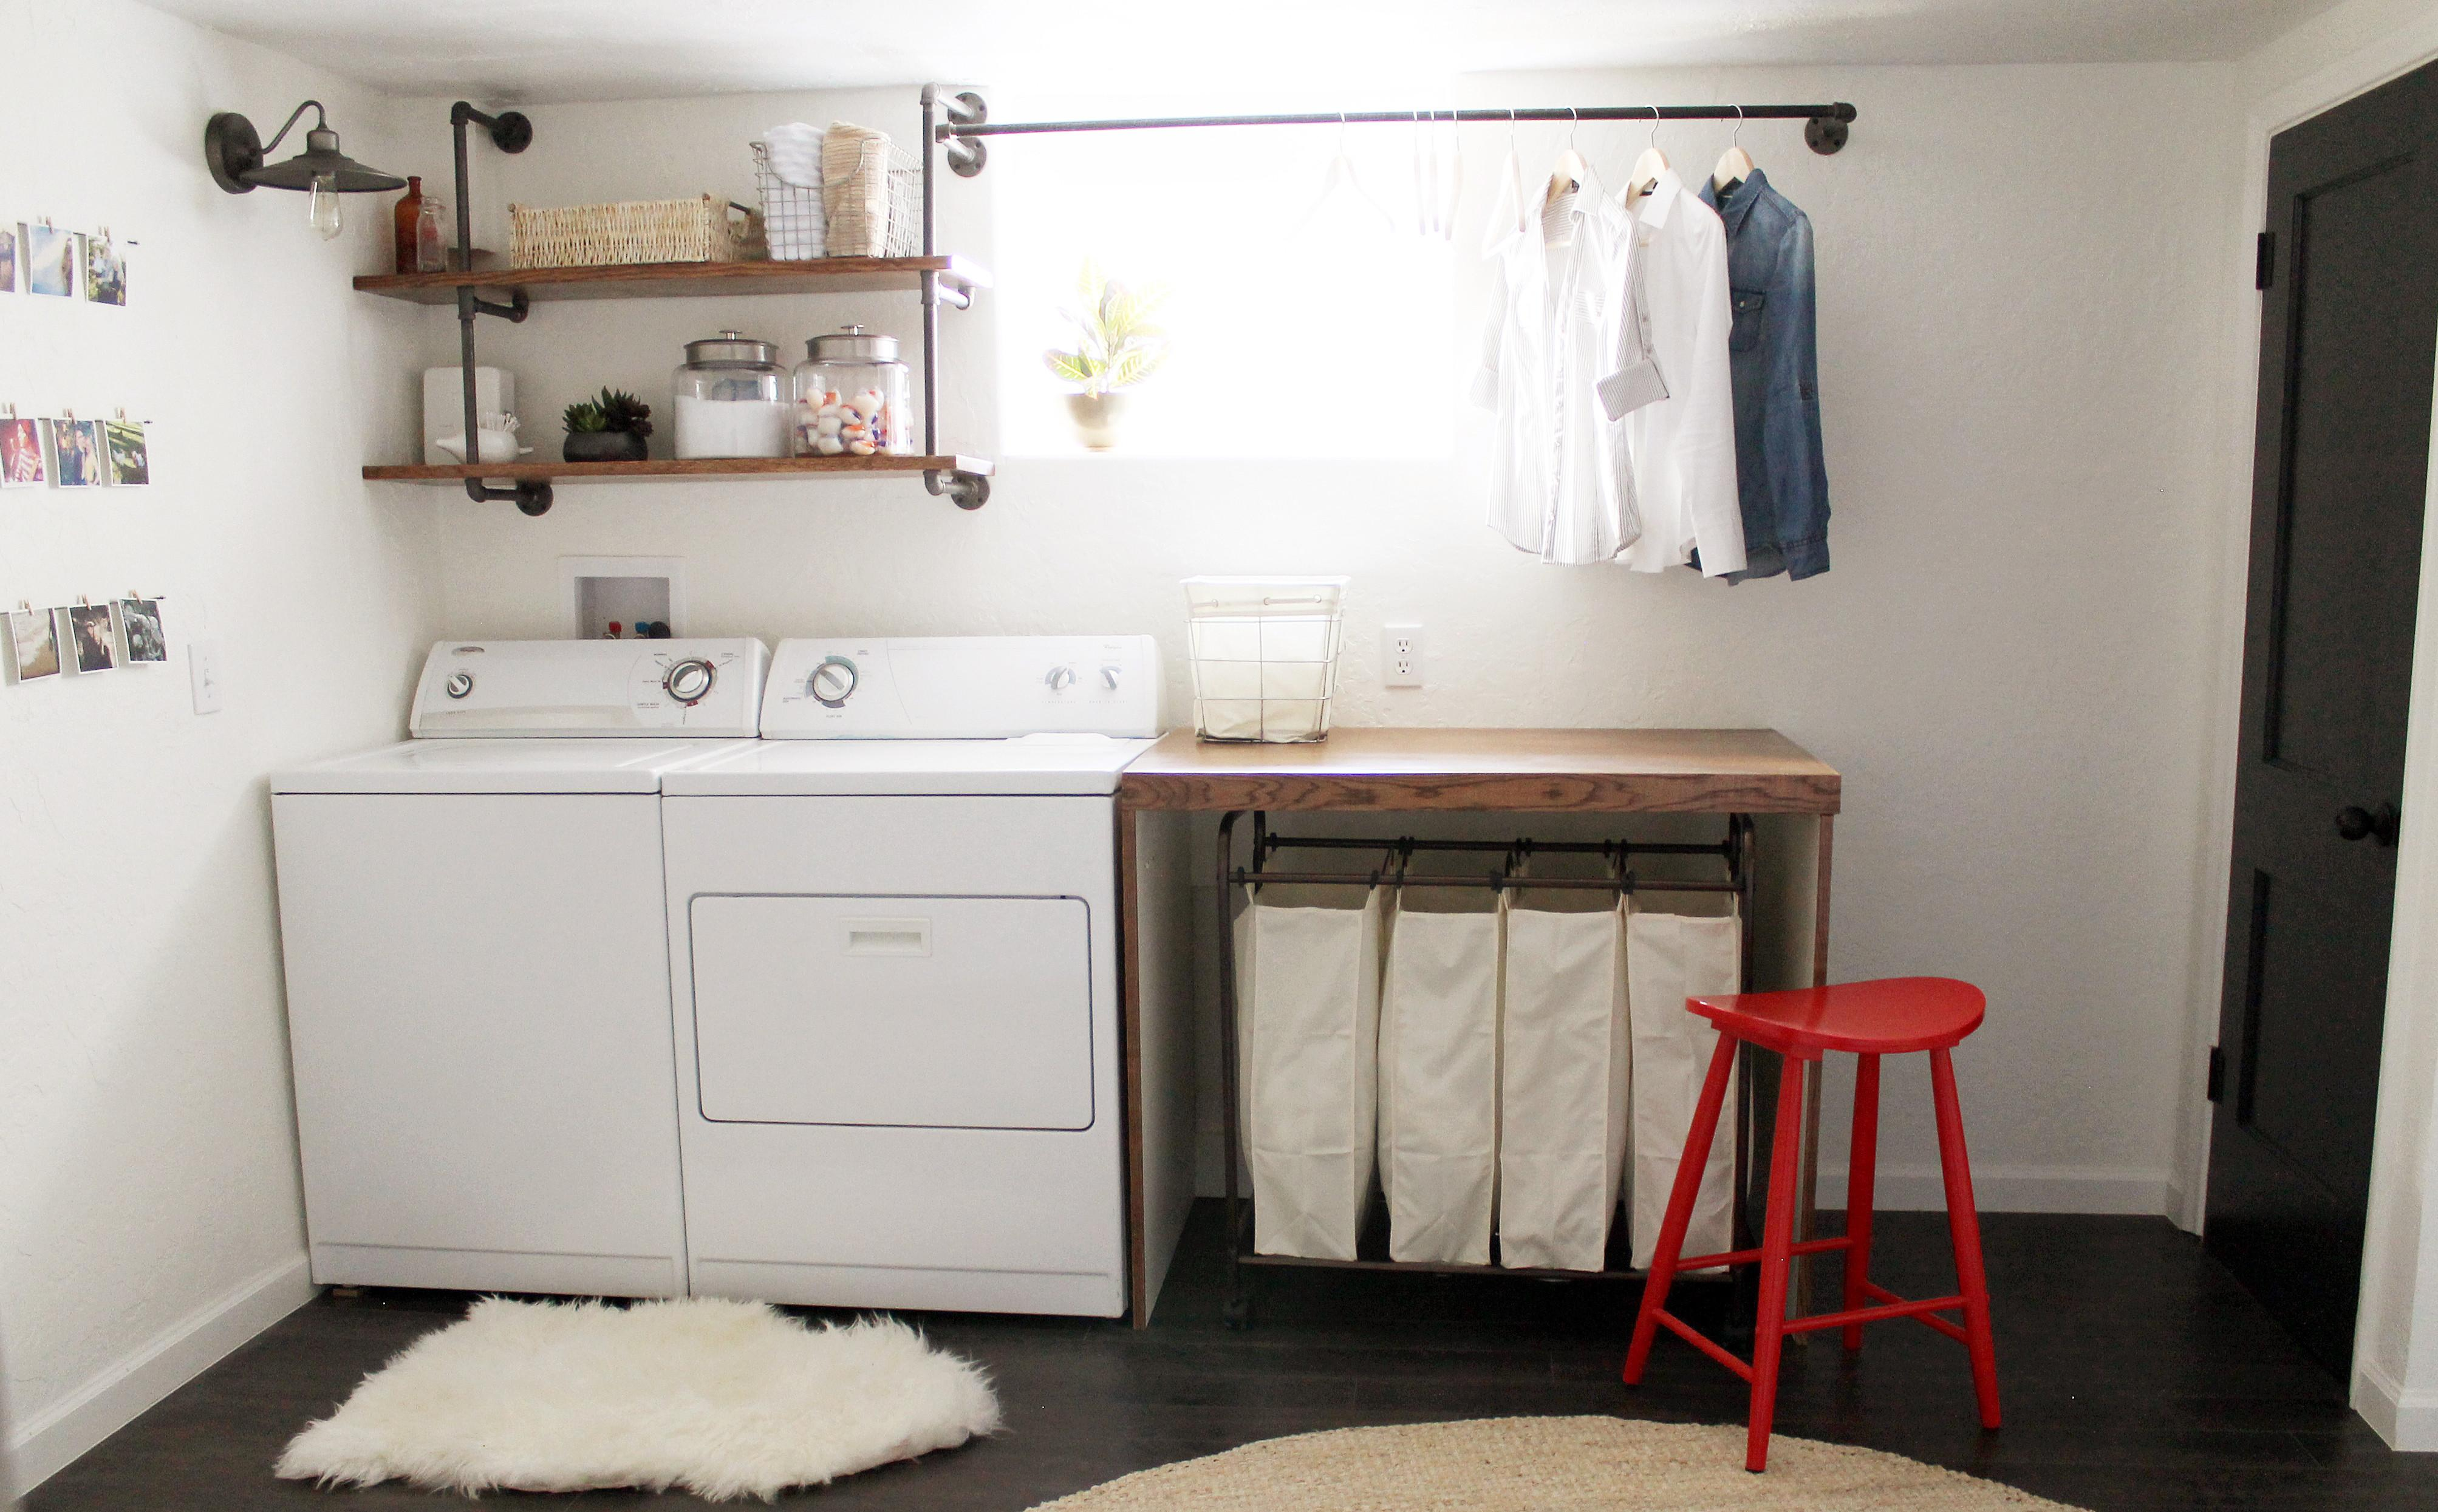 Diy Basement Laundry Room Makeover Small